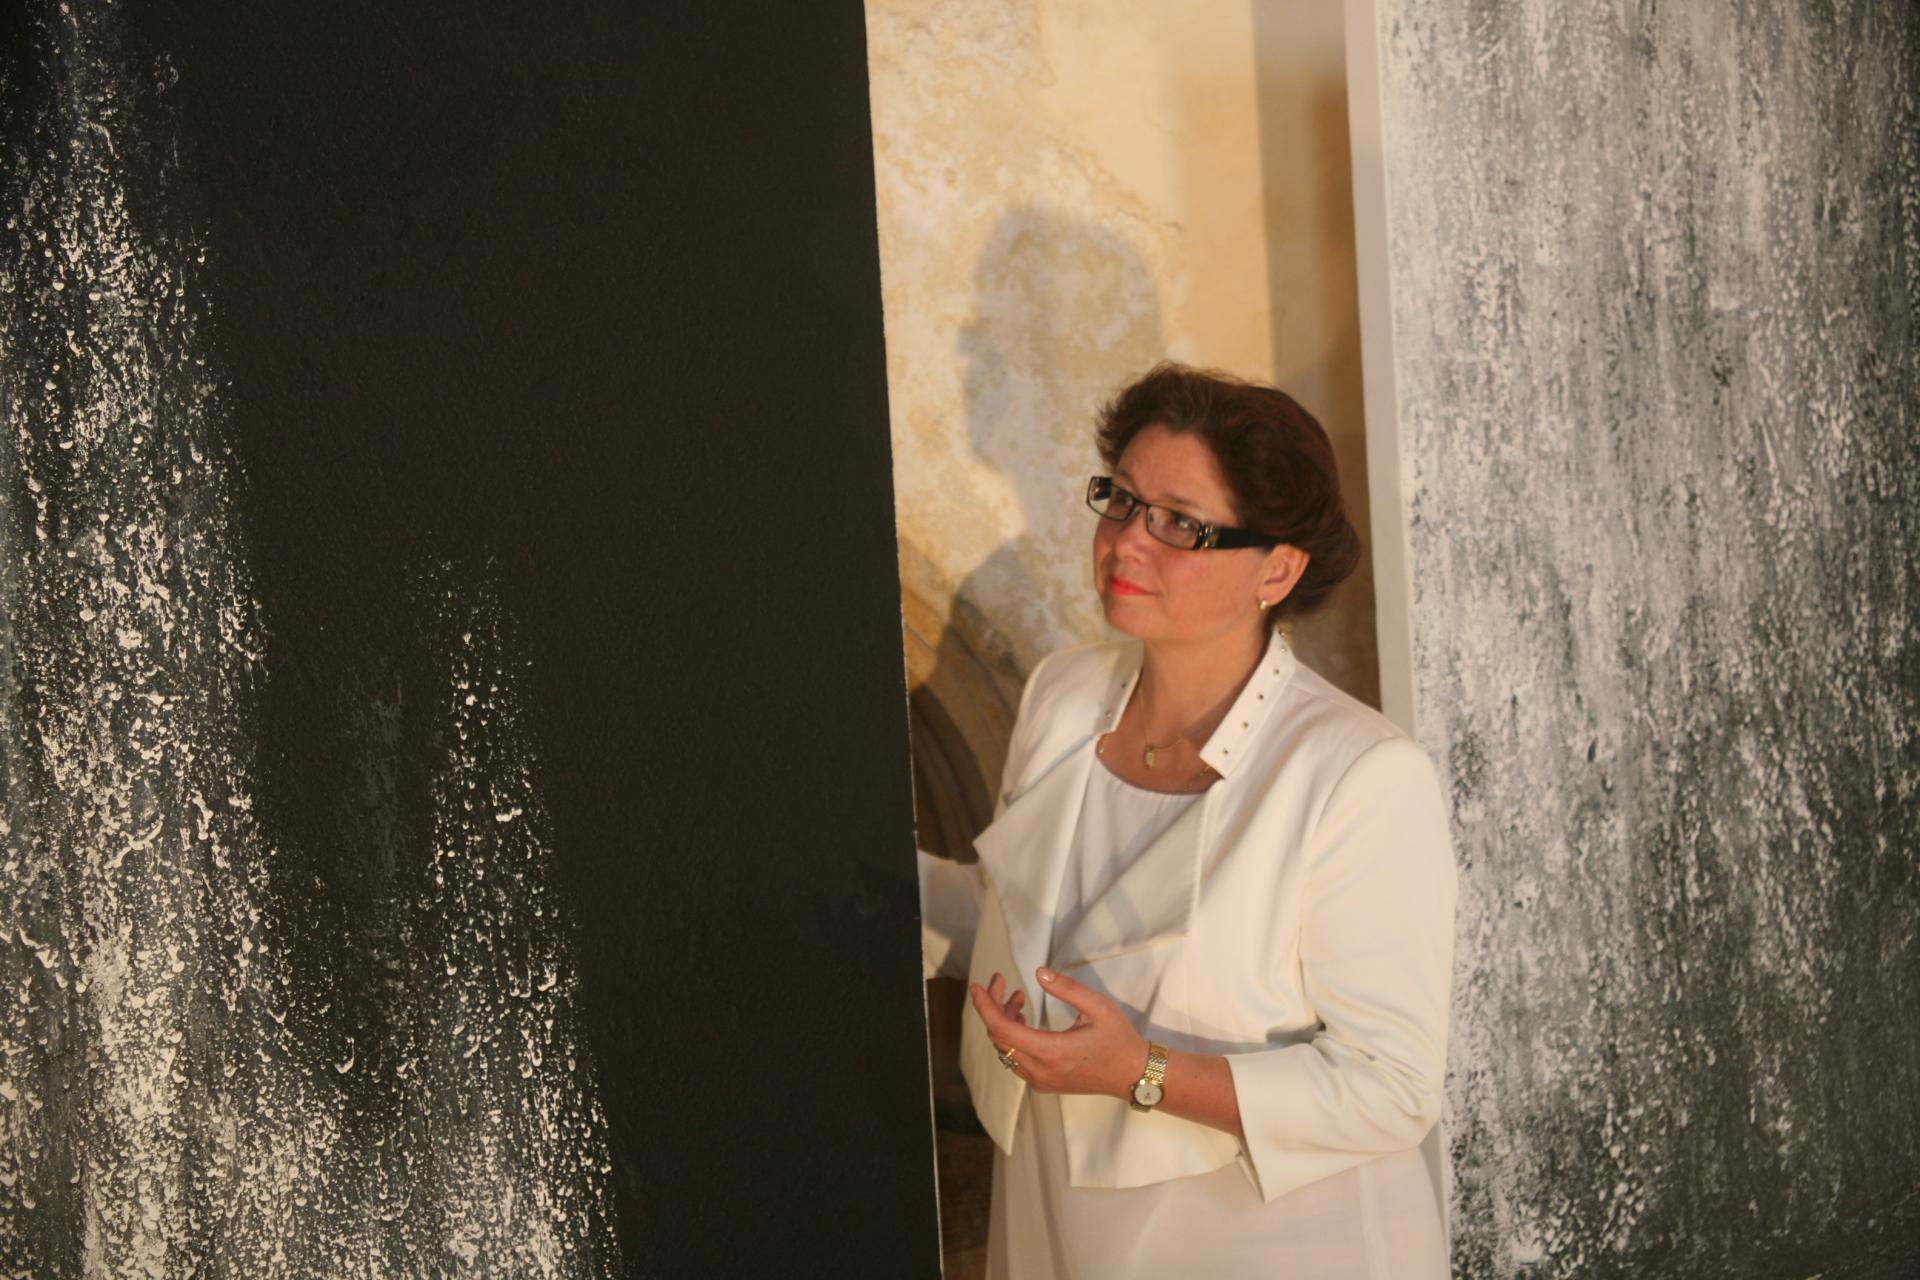 1 the painter verena von lichtenberg and her exhibition in saulieu the modern art exhibition